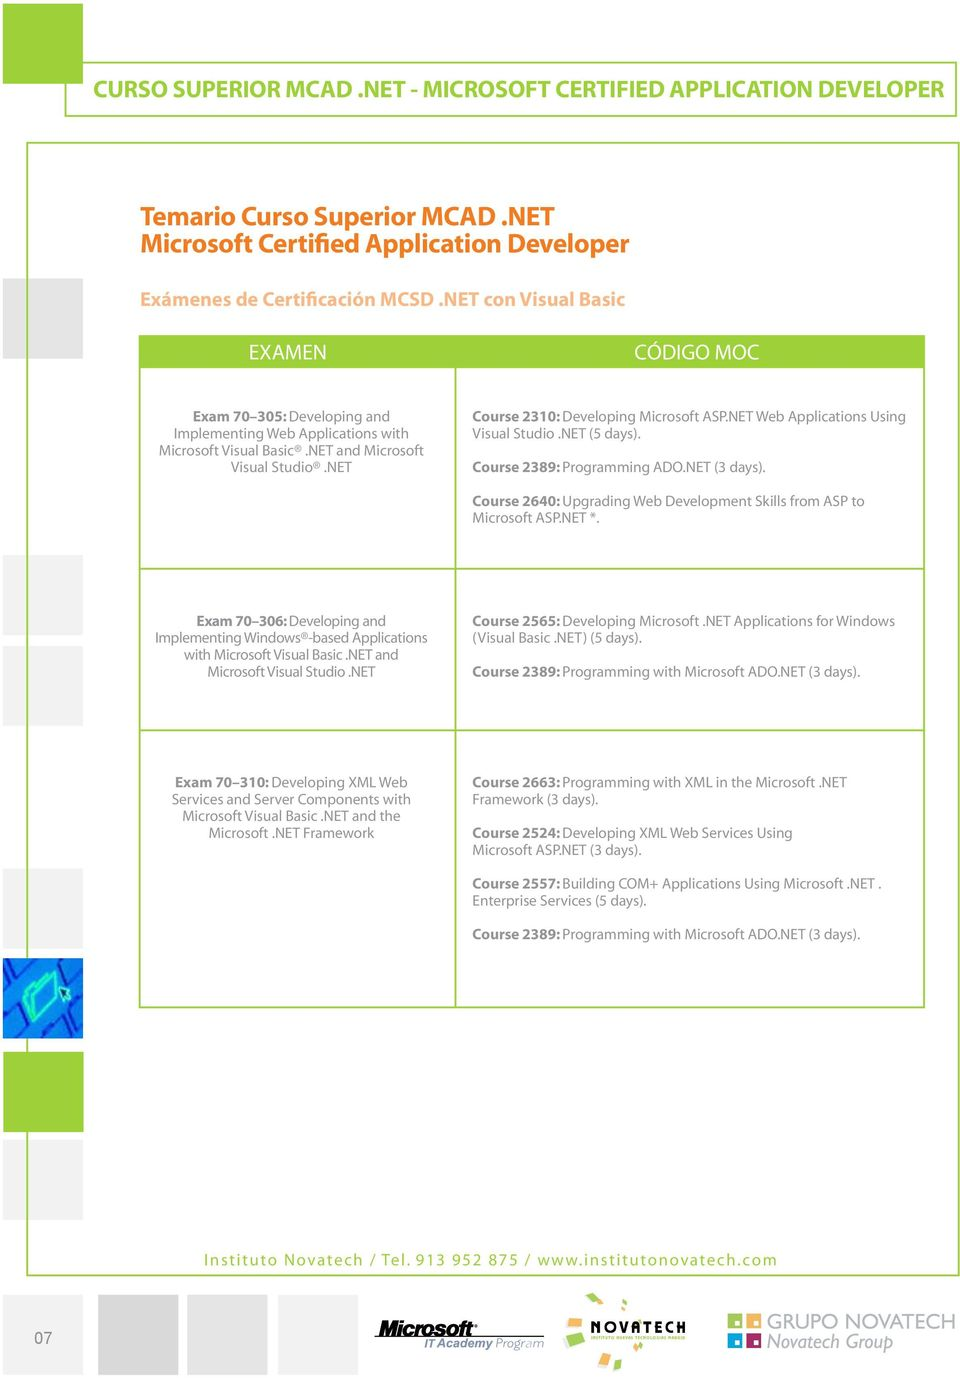 Course 2640: Upgrading Web Development Skills from ASP to Microsoft ASP.NET *. Exam 70 306: Developing and Implementing Windows -based Applications with Microsoft Visual Basic.